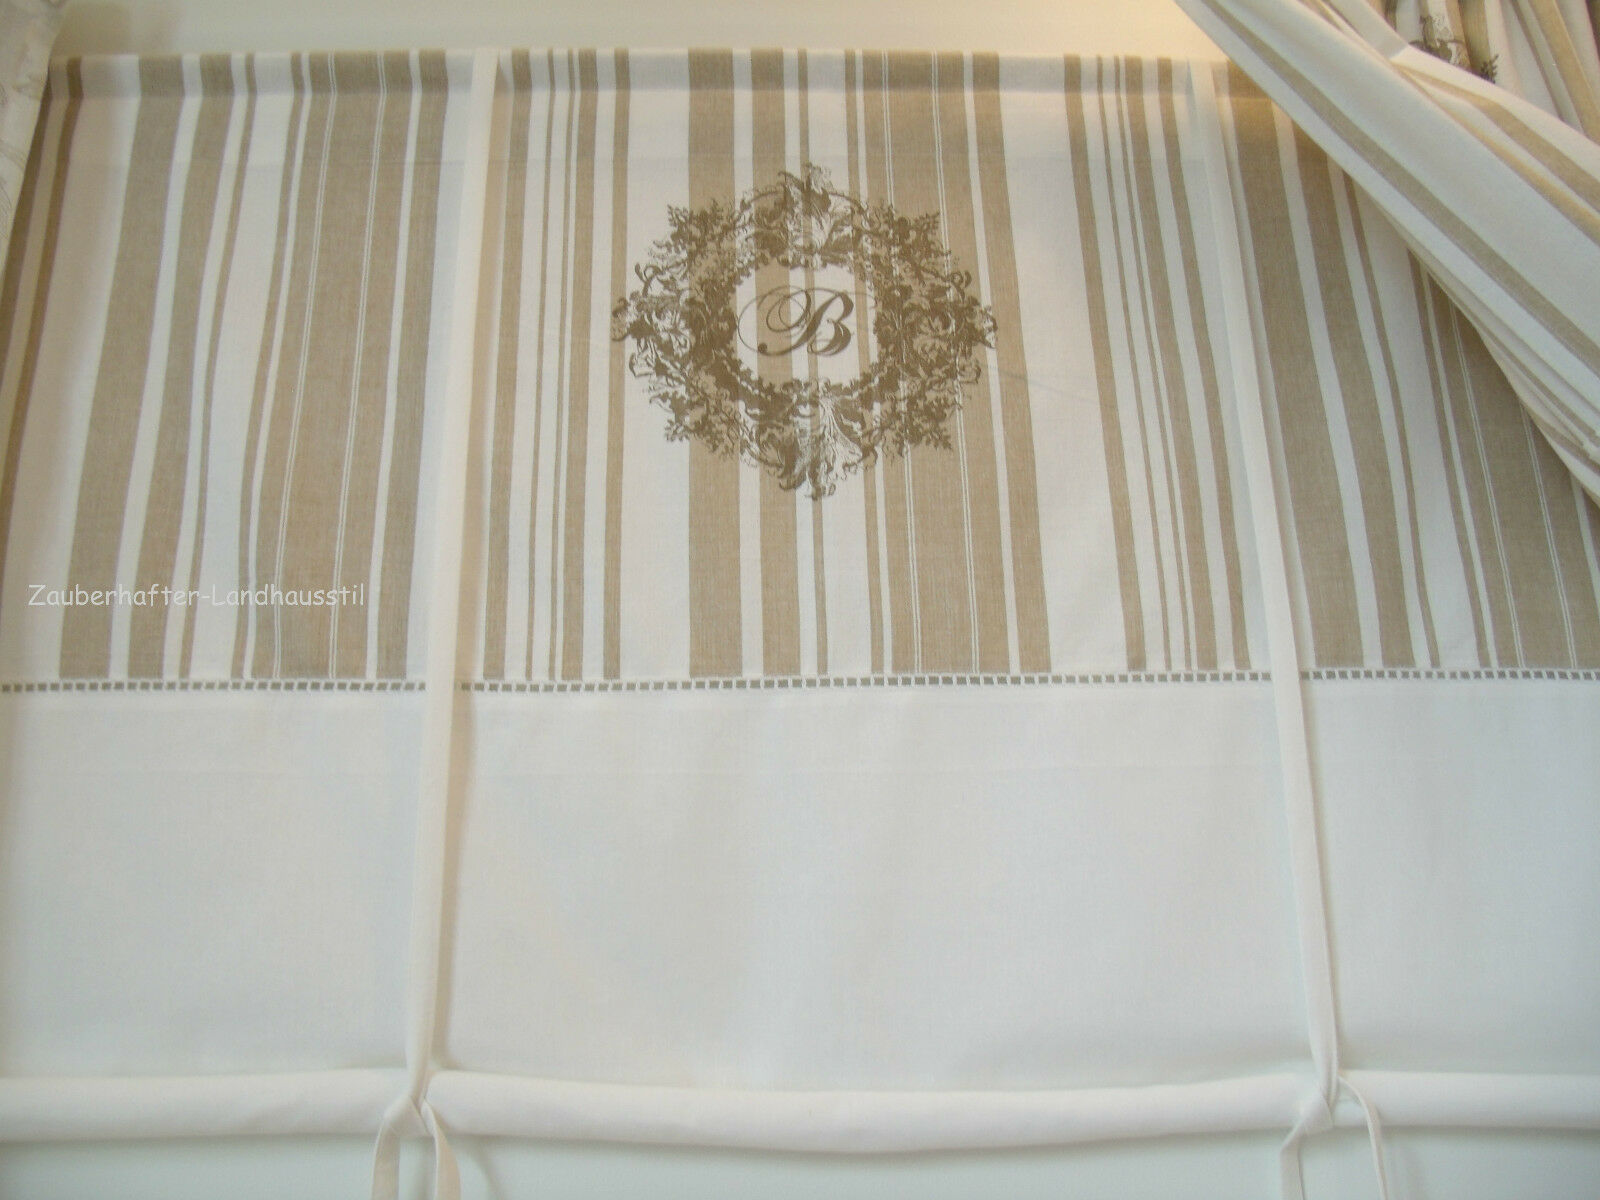 beatrice deko raff gardine 140x100 shabby vintage curtain franske landhausstil ebay. Black Bedroom Furniture Sets. Home Design Ideas